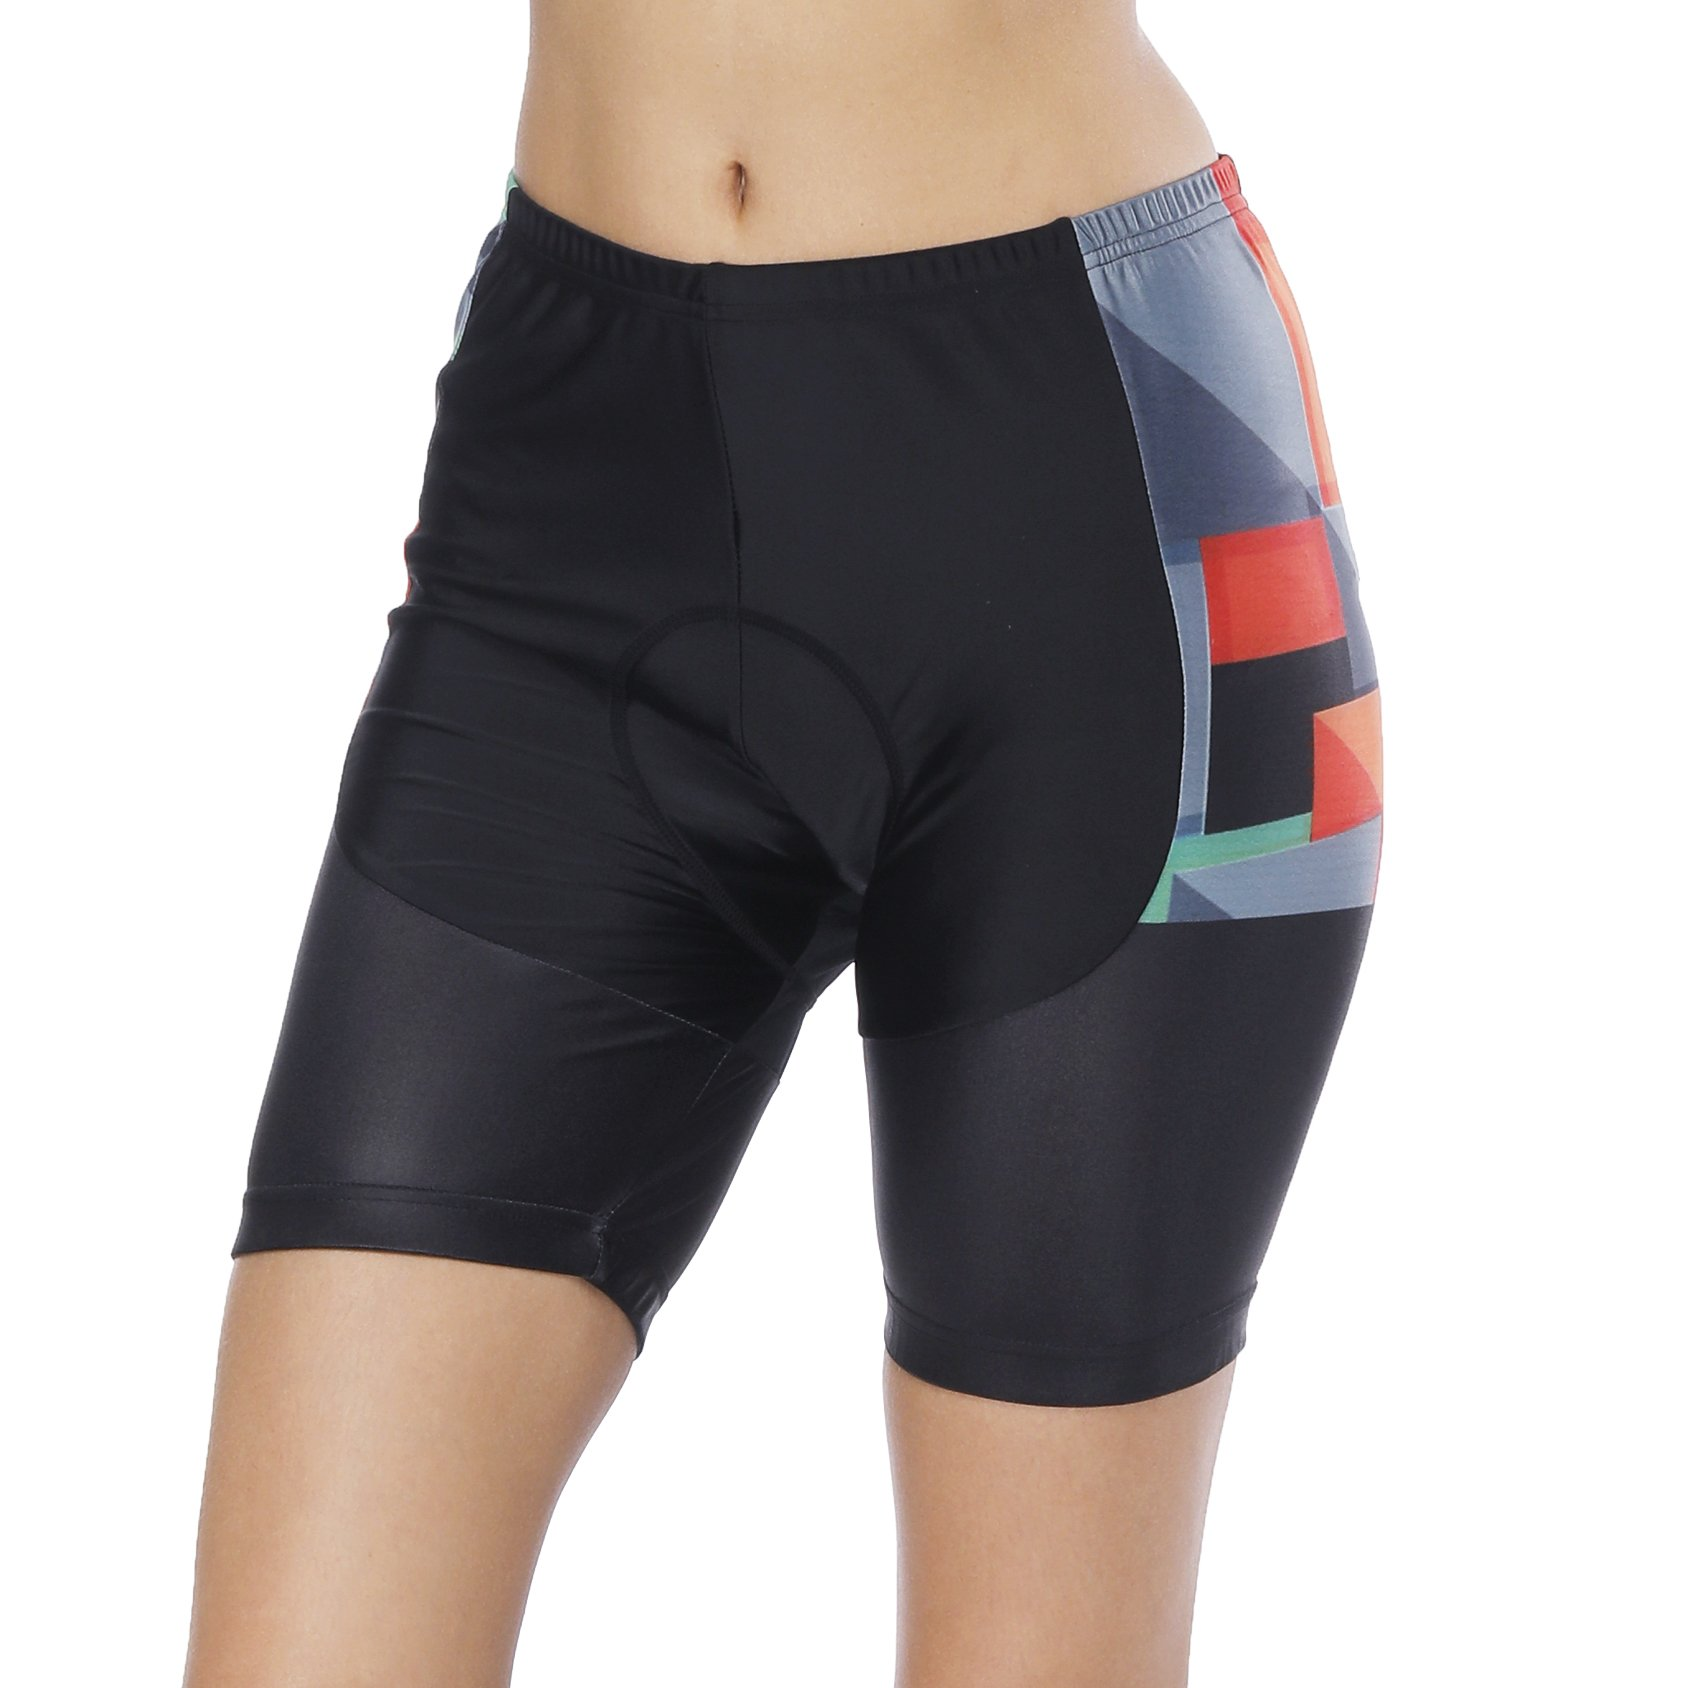 Womens Bike Shorts for Cycling with 3D Padded Pink Ride Women Cycling Shorts Rainbow S